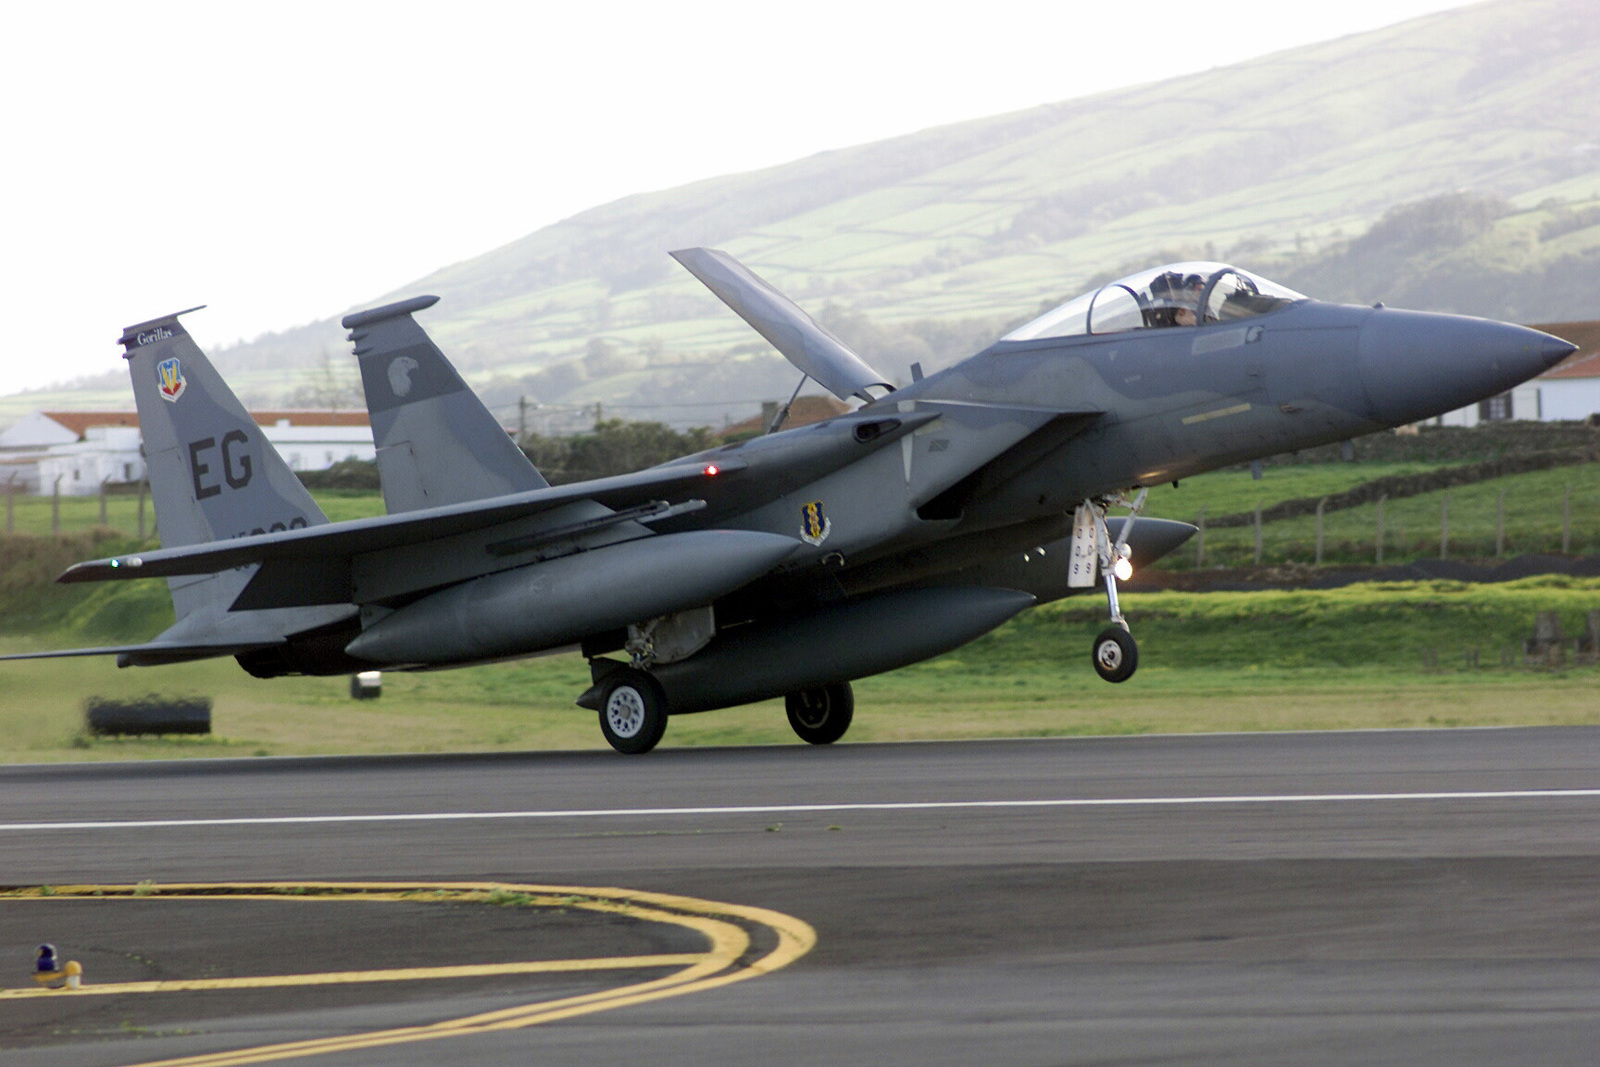 An F-15 Eagle from the 58th Fighter Squadron, Elgin Air Force Base, Florida, arrives at Lajes Field, Azores, Portugal. The F-15 and pilot are part of a group enroute to the US after supporting CORONET EAST Operations in Kuwait